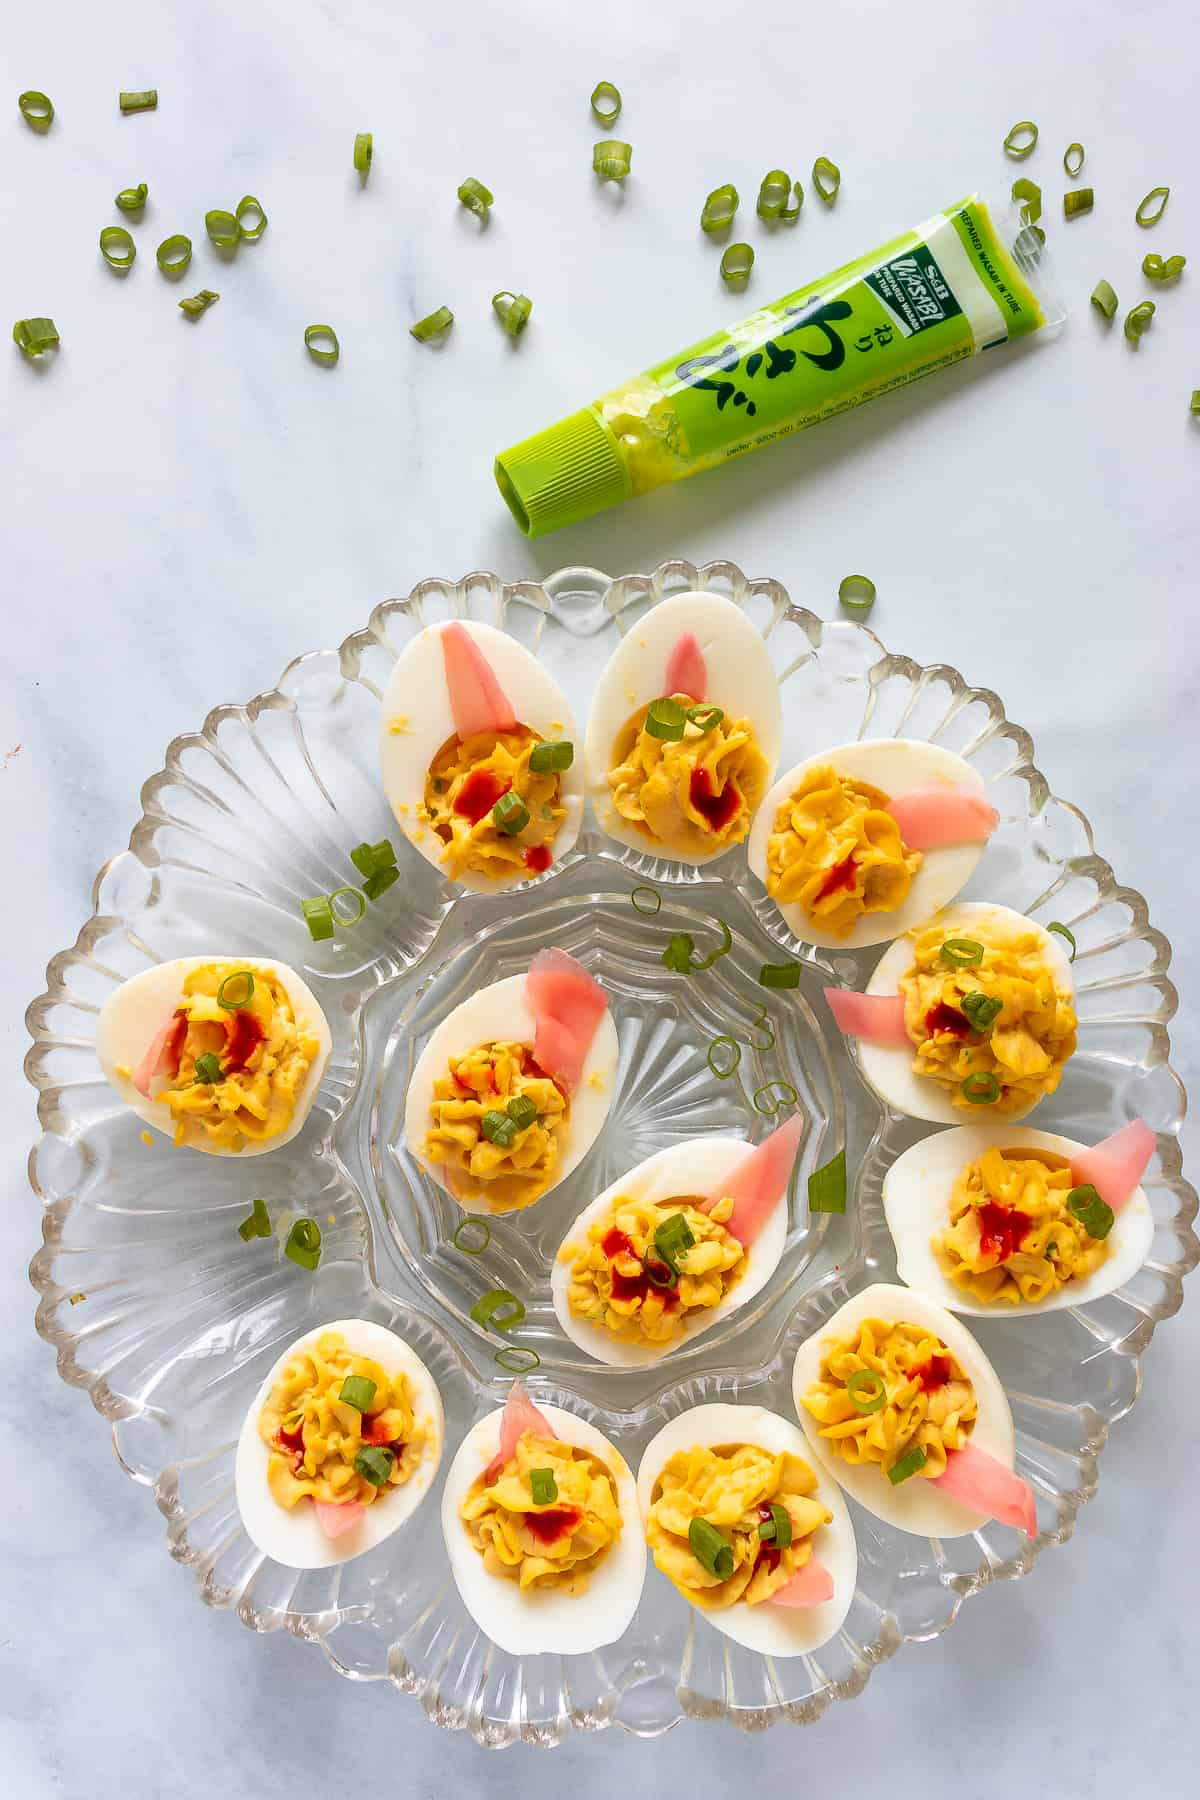 Finished plate of wasabi deviled eggs